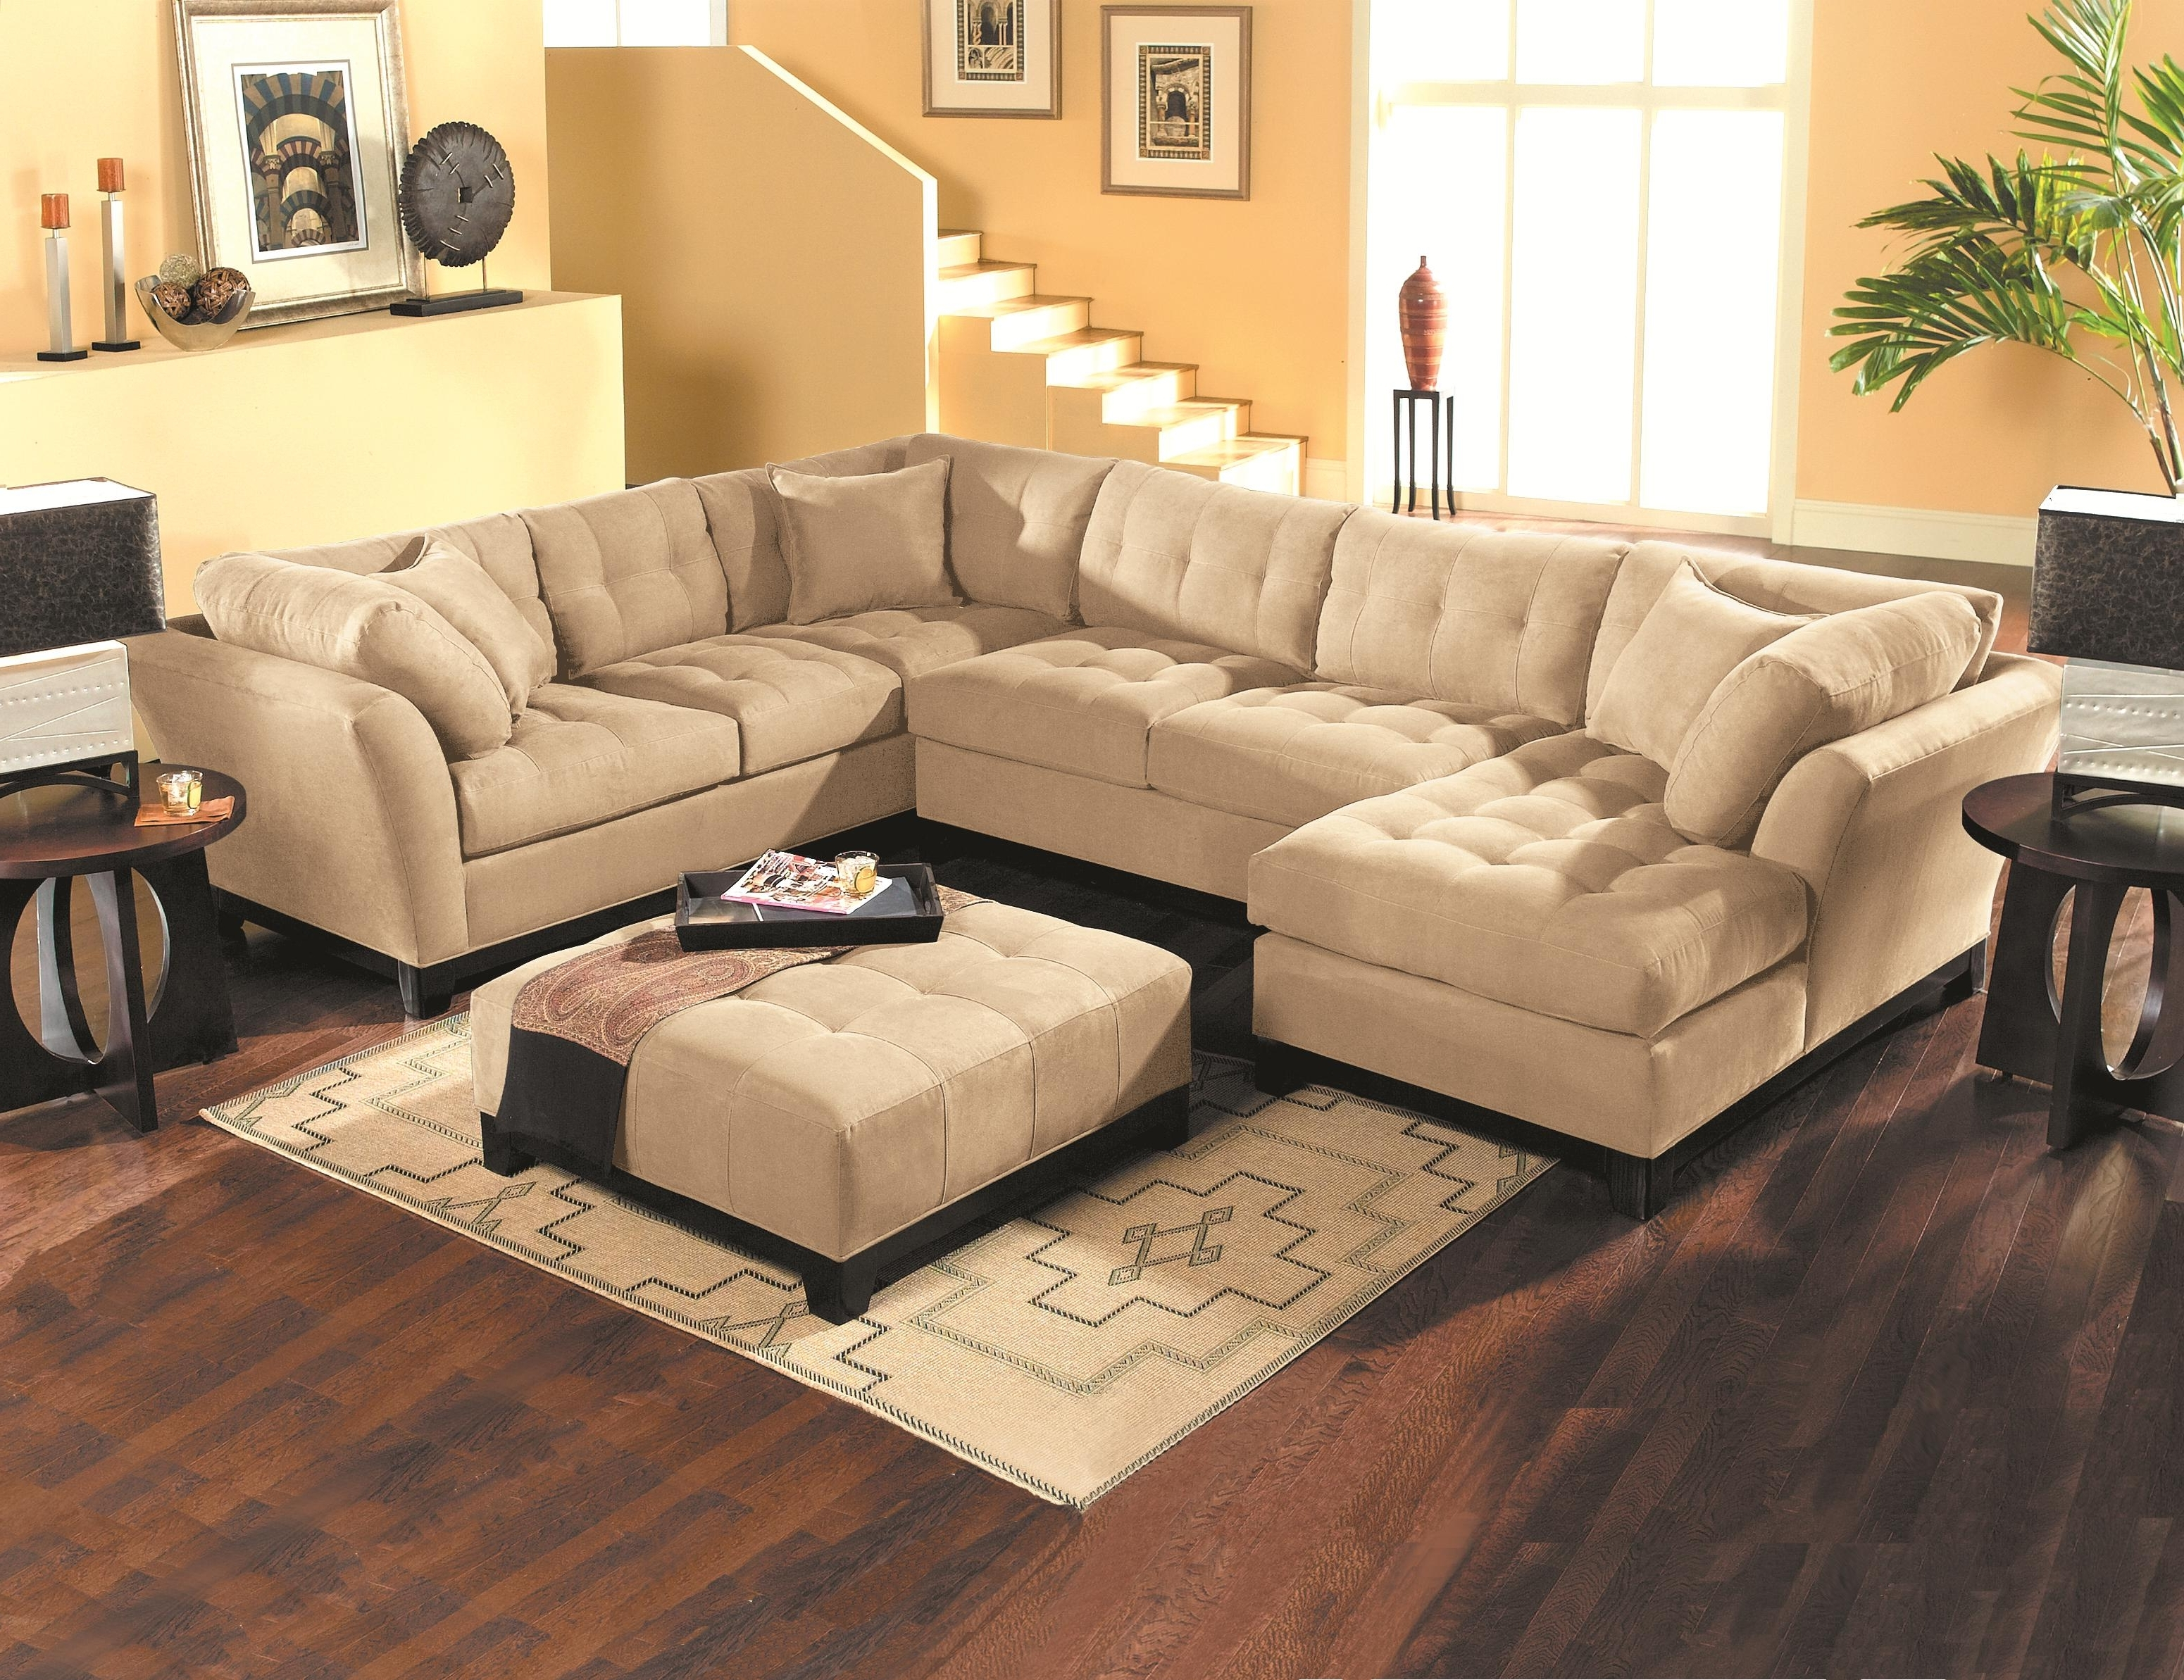 Sectional Regarding Tufted Sectional Sofas (View 7 of 20)